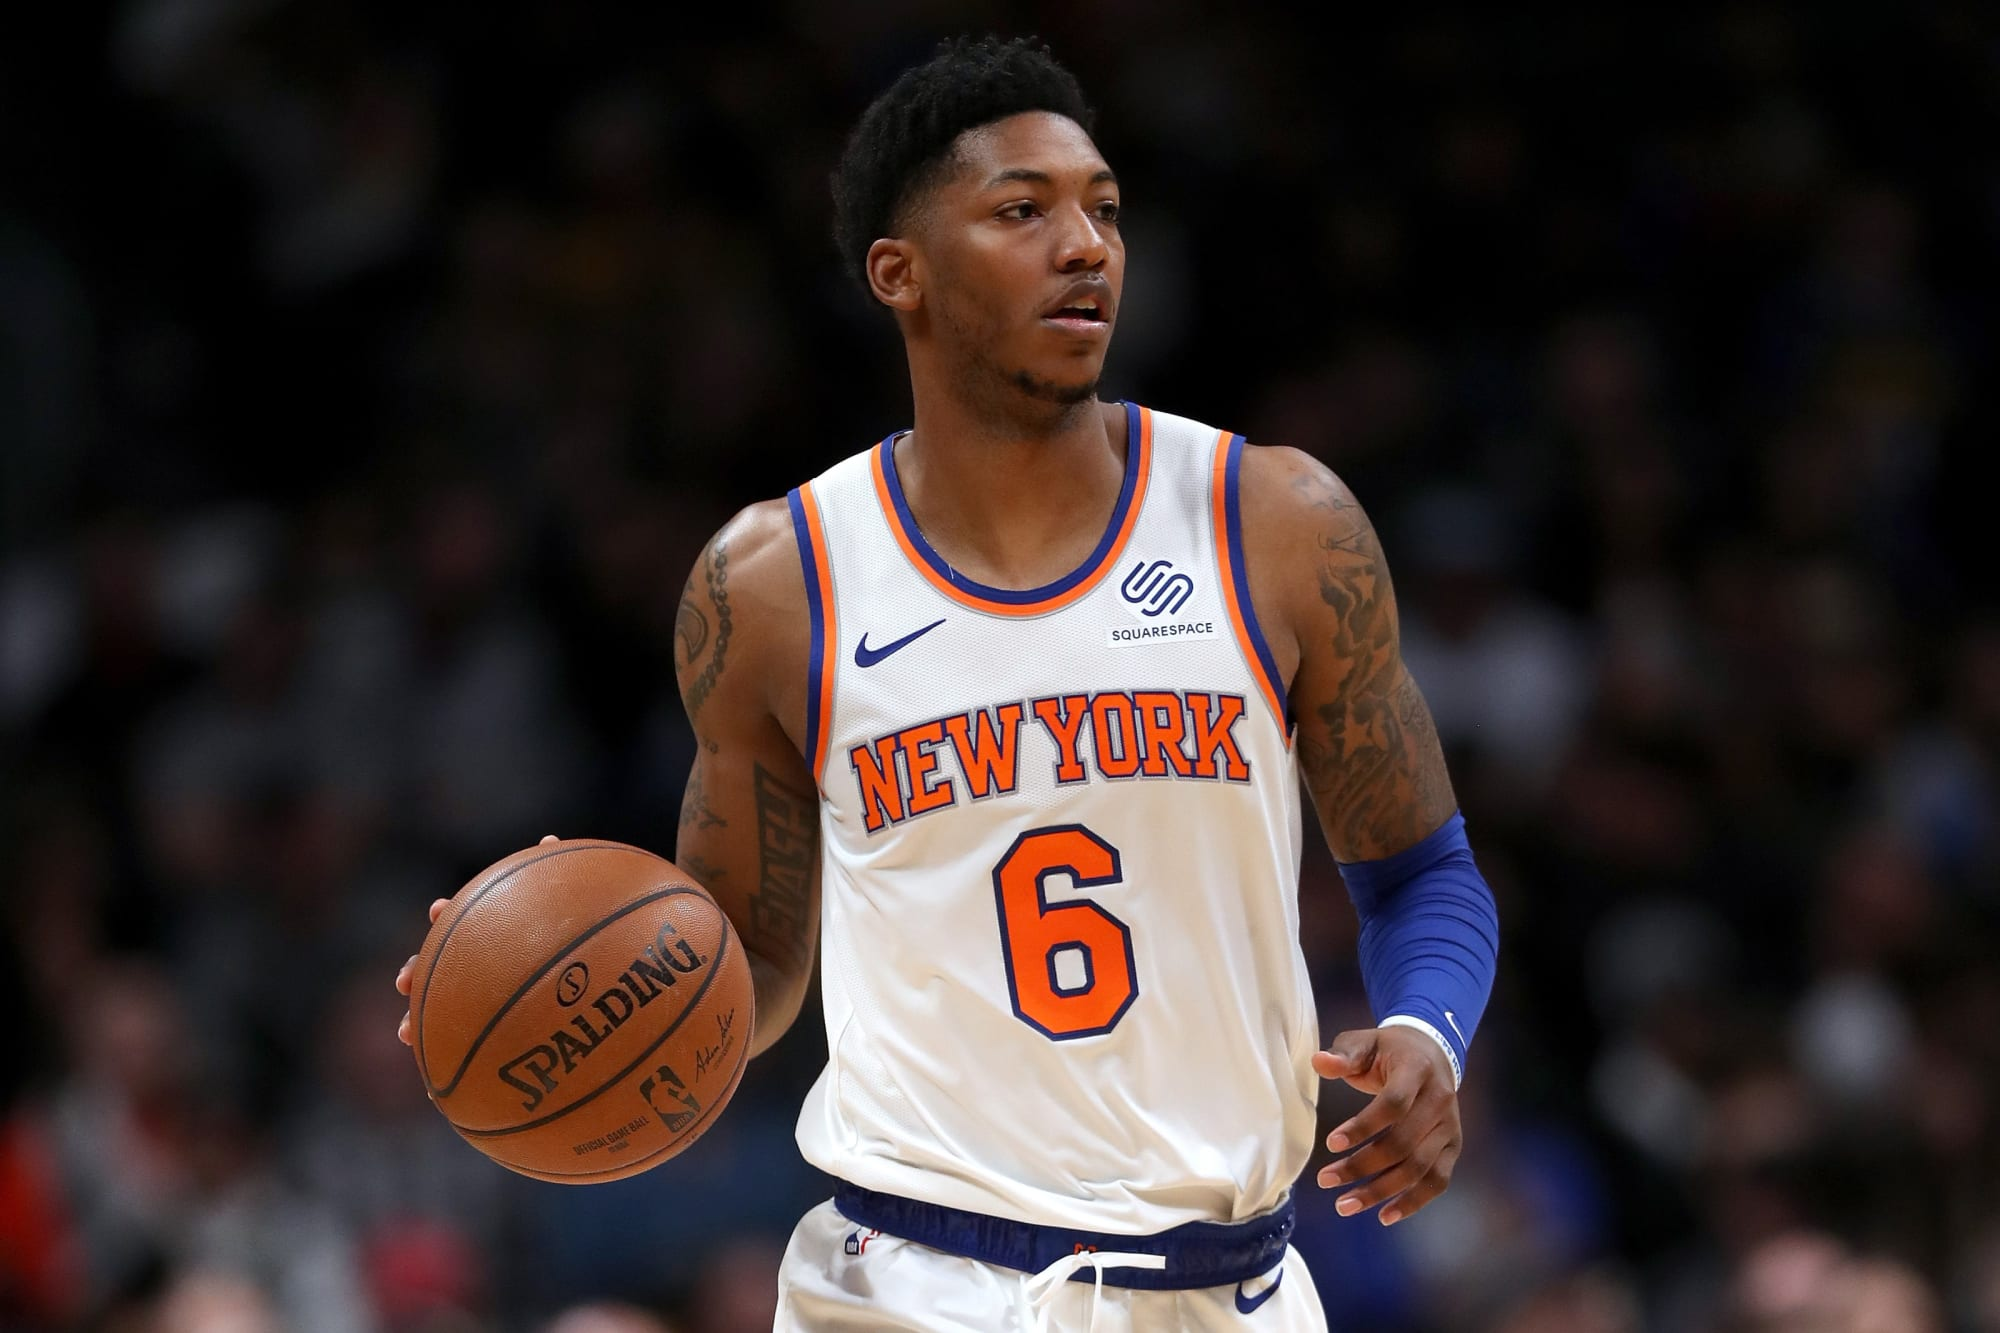 How Elfrid Payton Proved He Could Be New York's Point Guard This Season